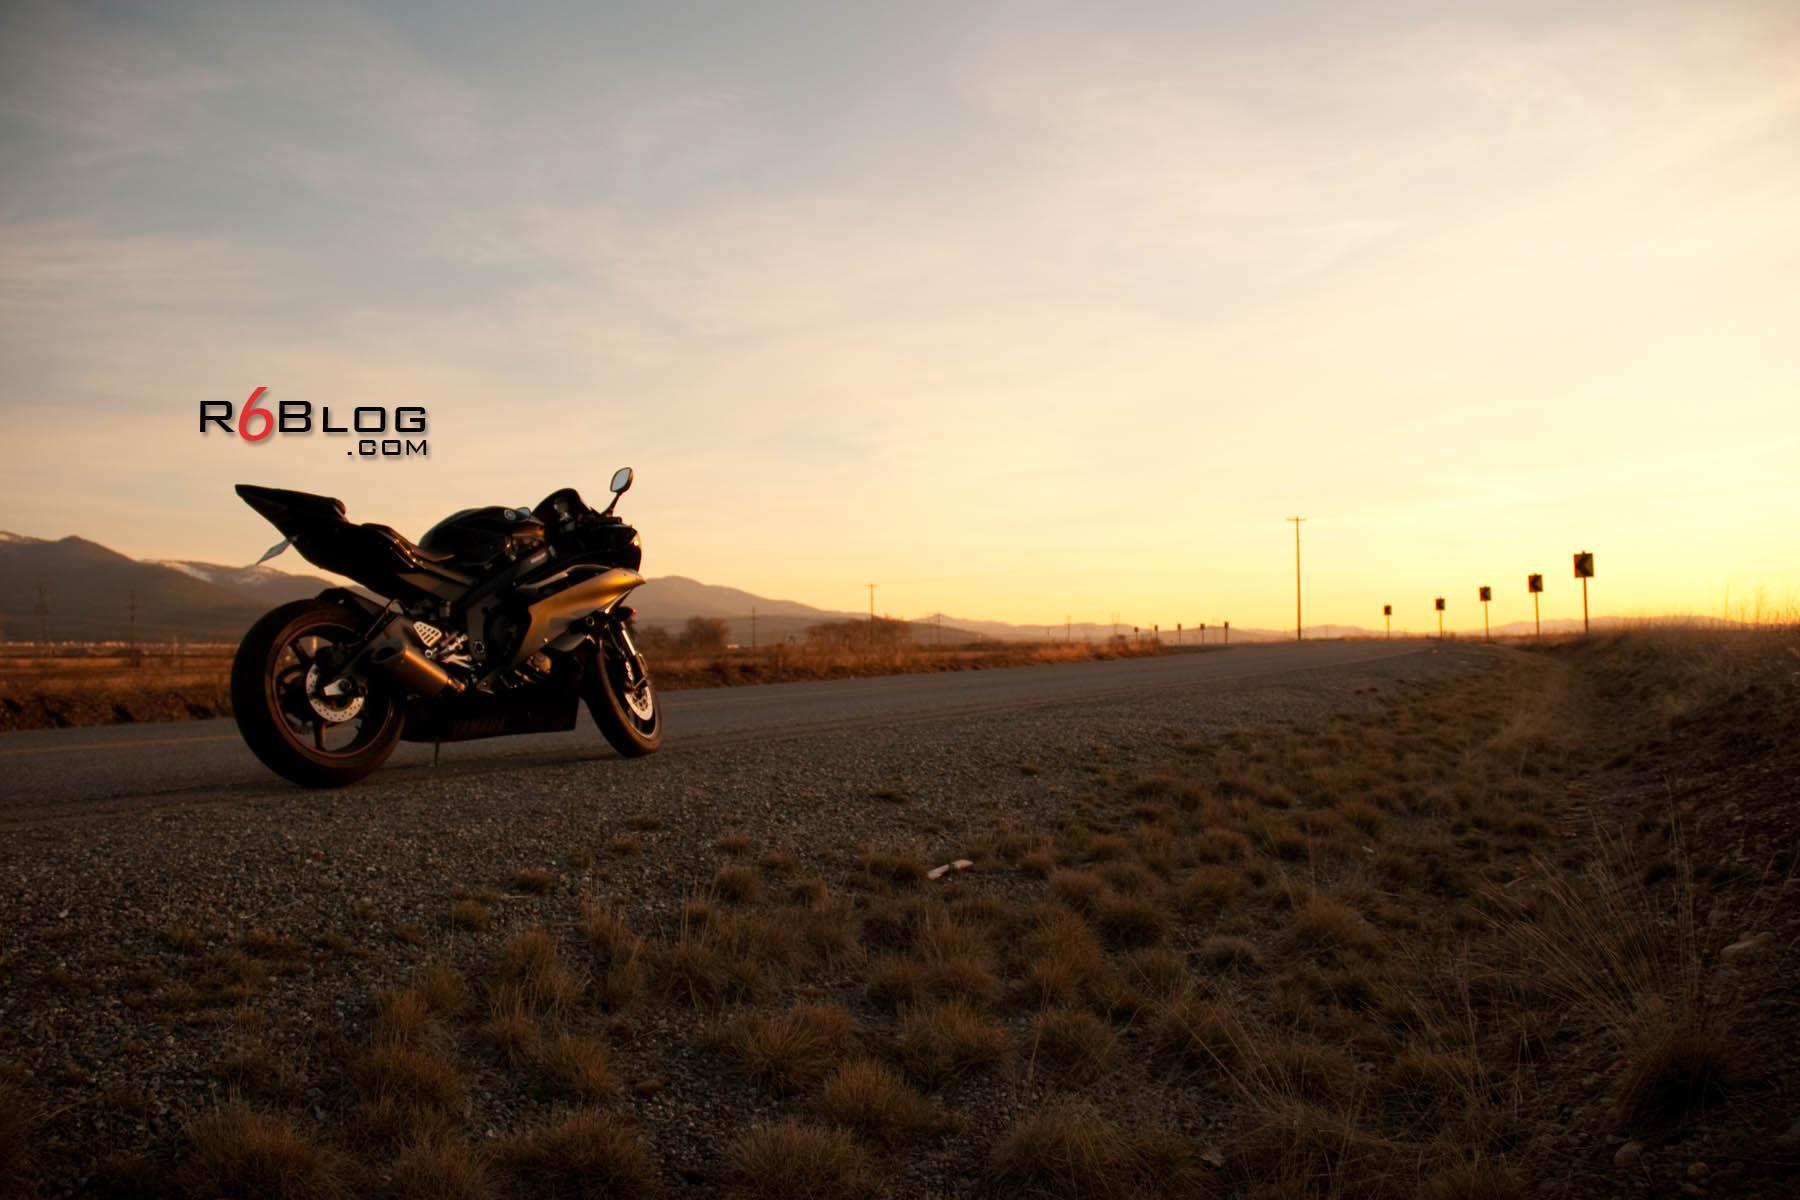 New Yamaha R6 Wallpapers From R6Blog! Yamaha R6 Wallpapers 4